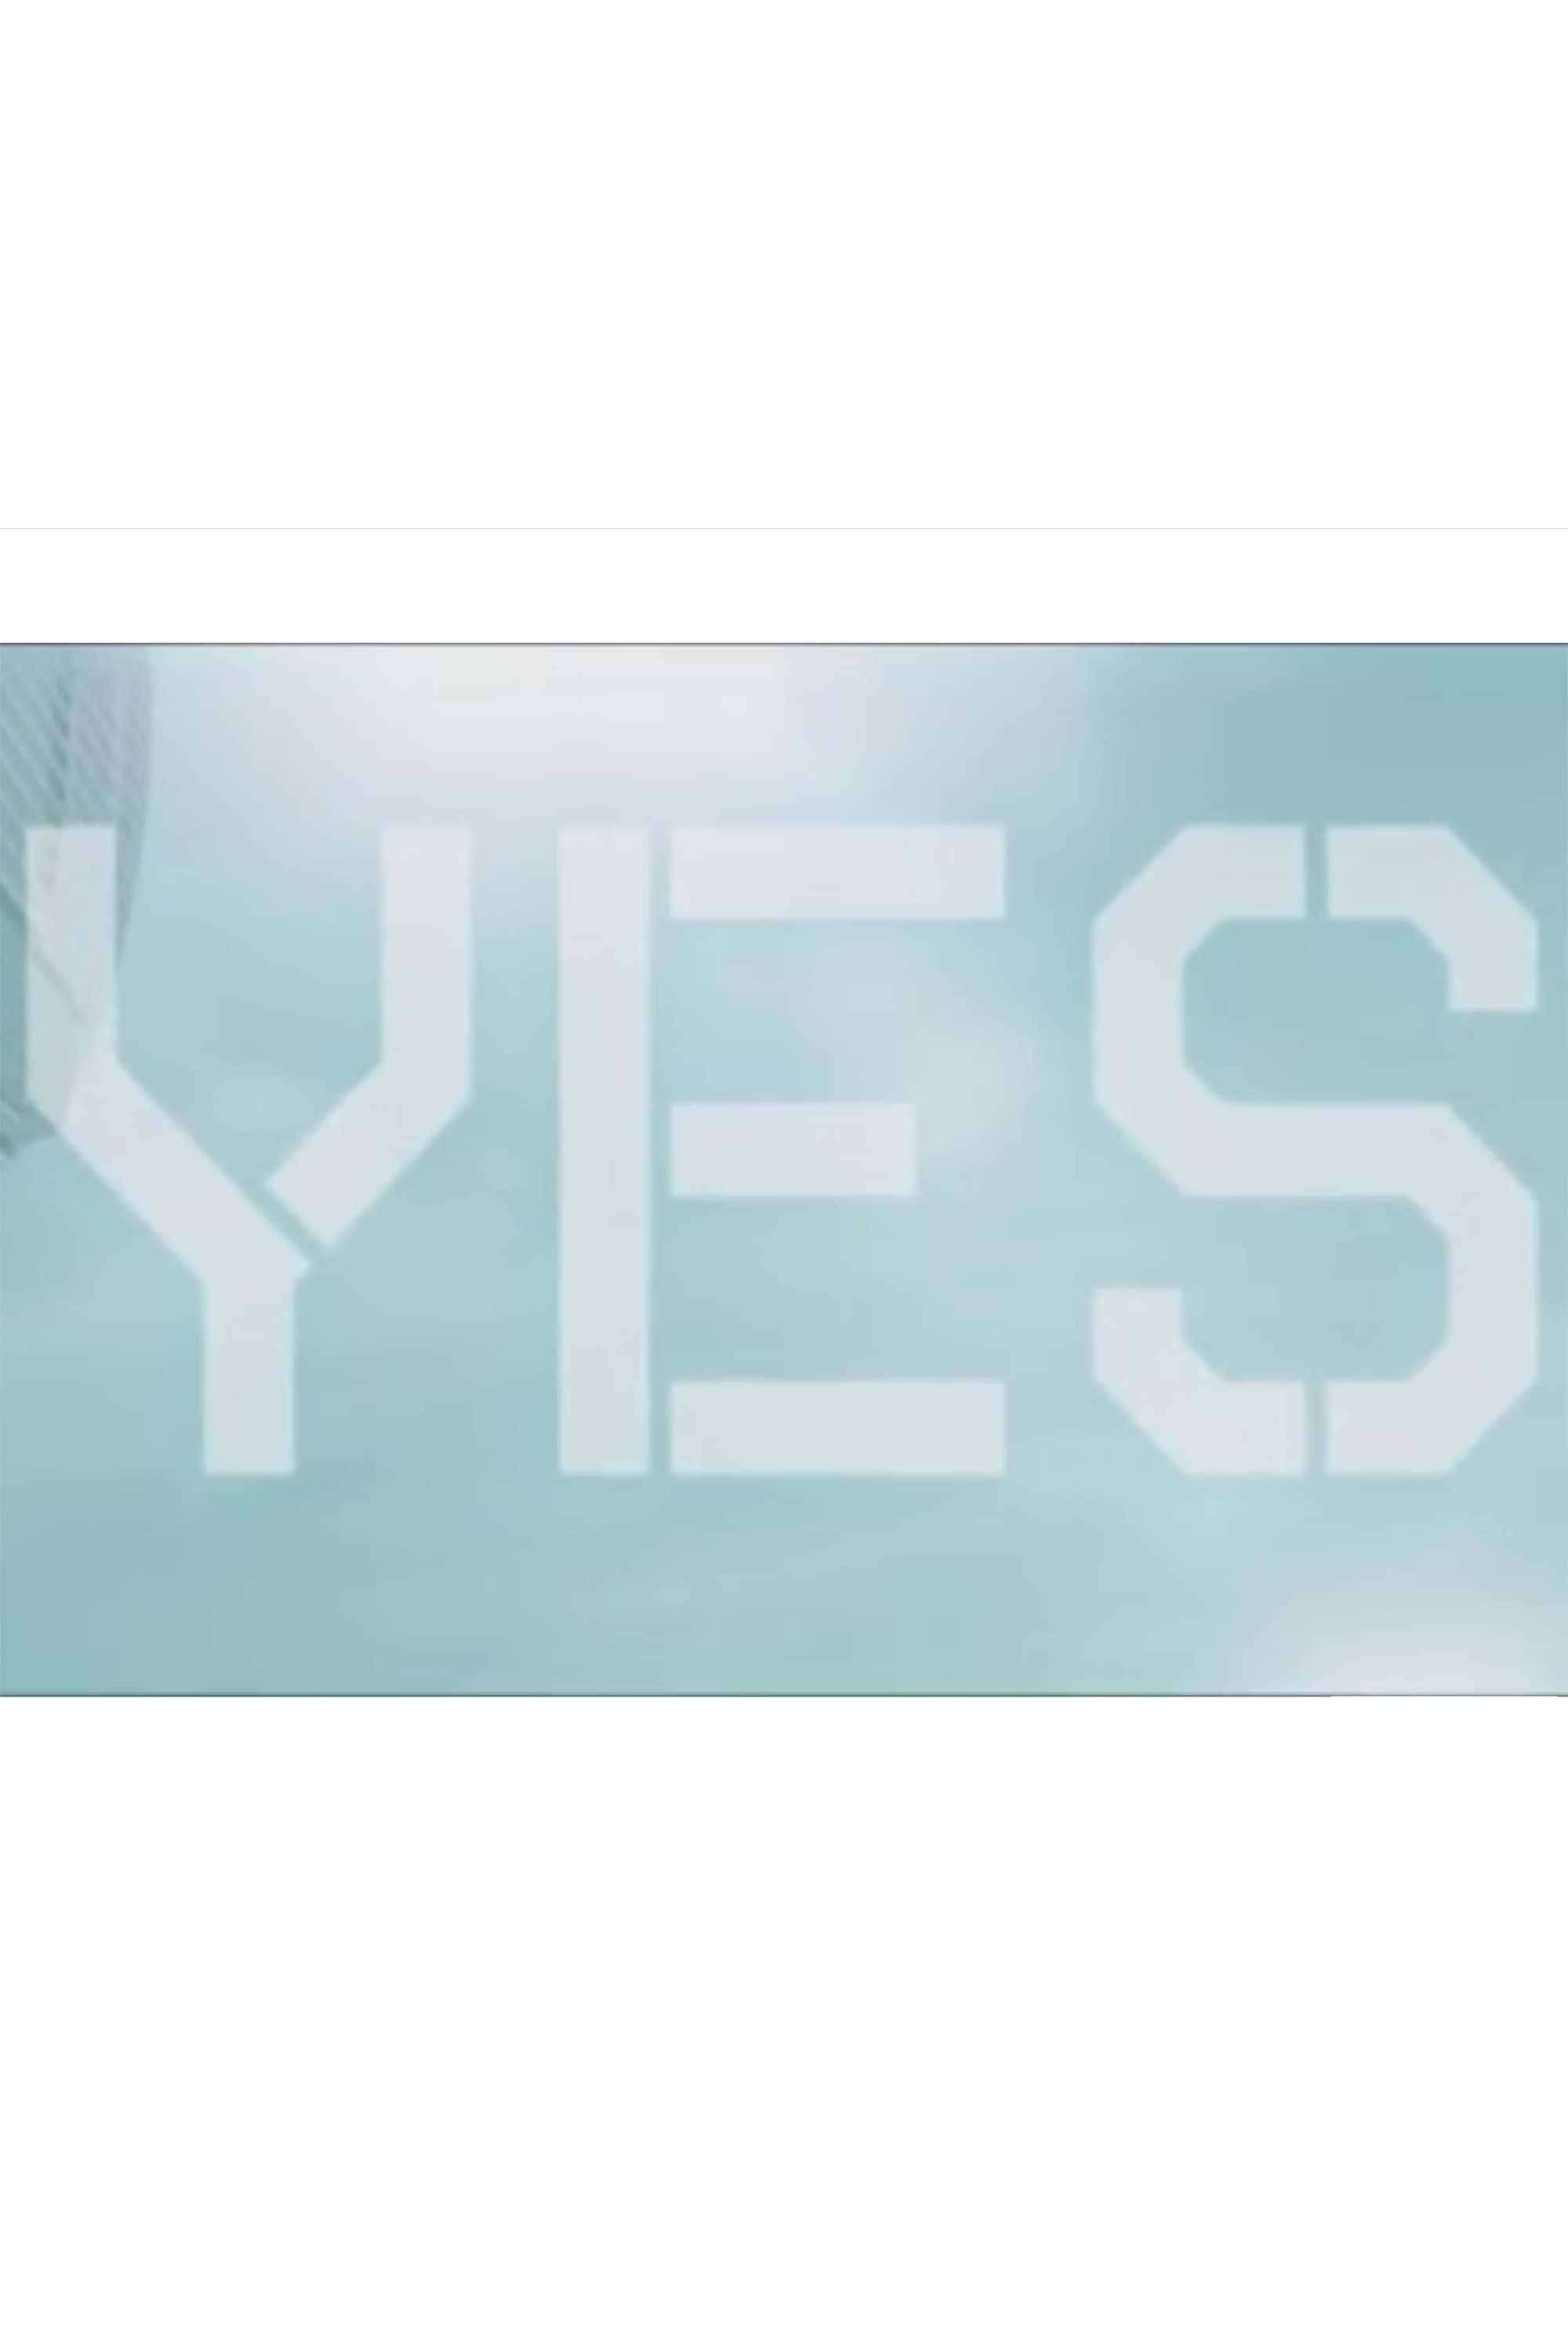 Ver Yes Online HD Español (2013)